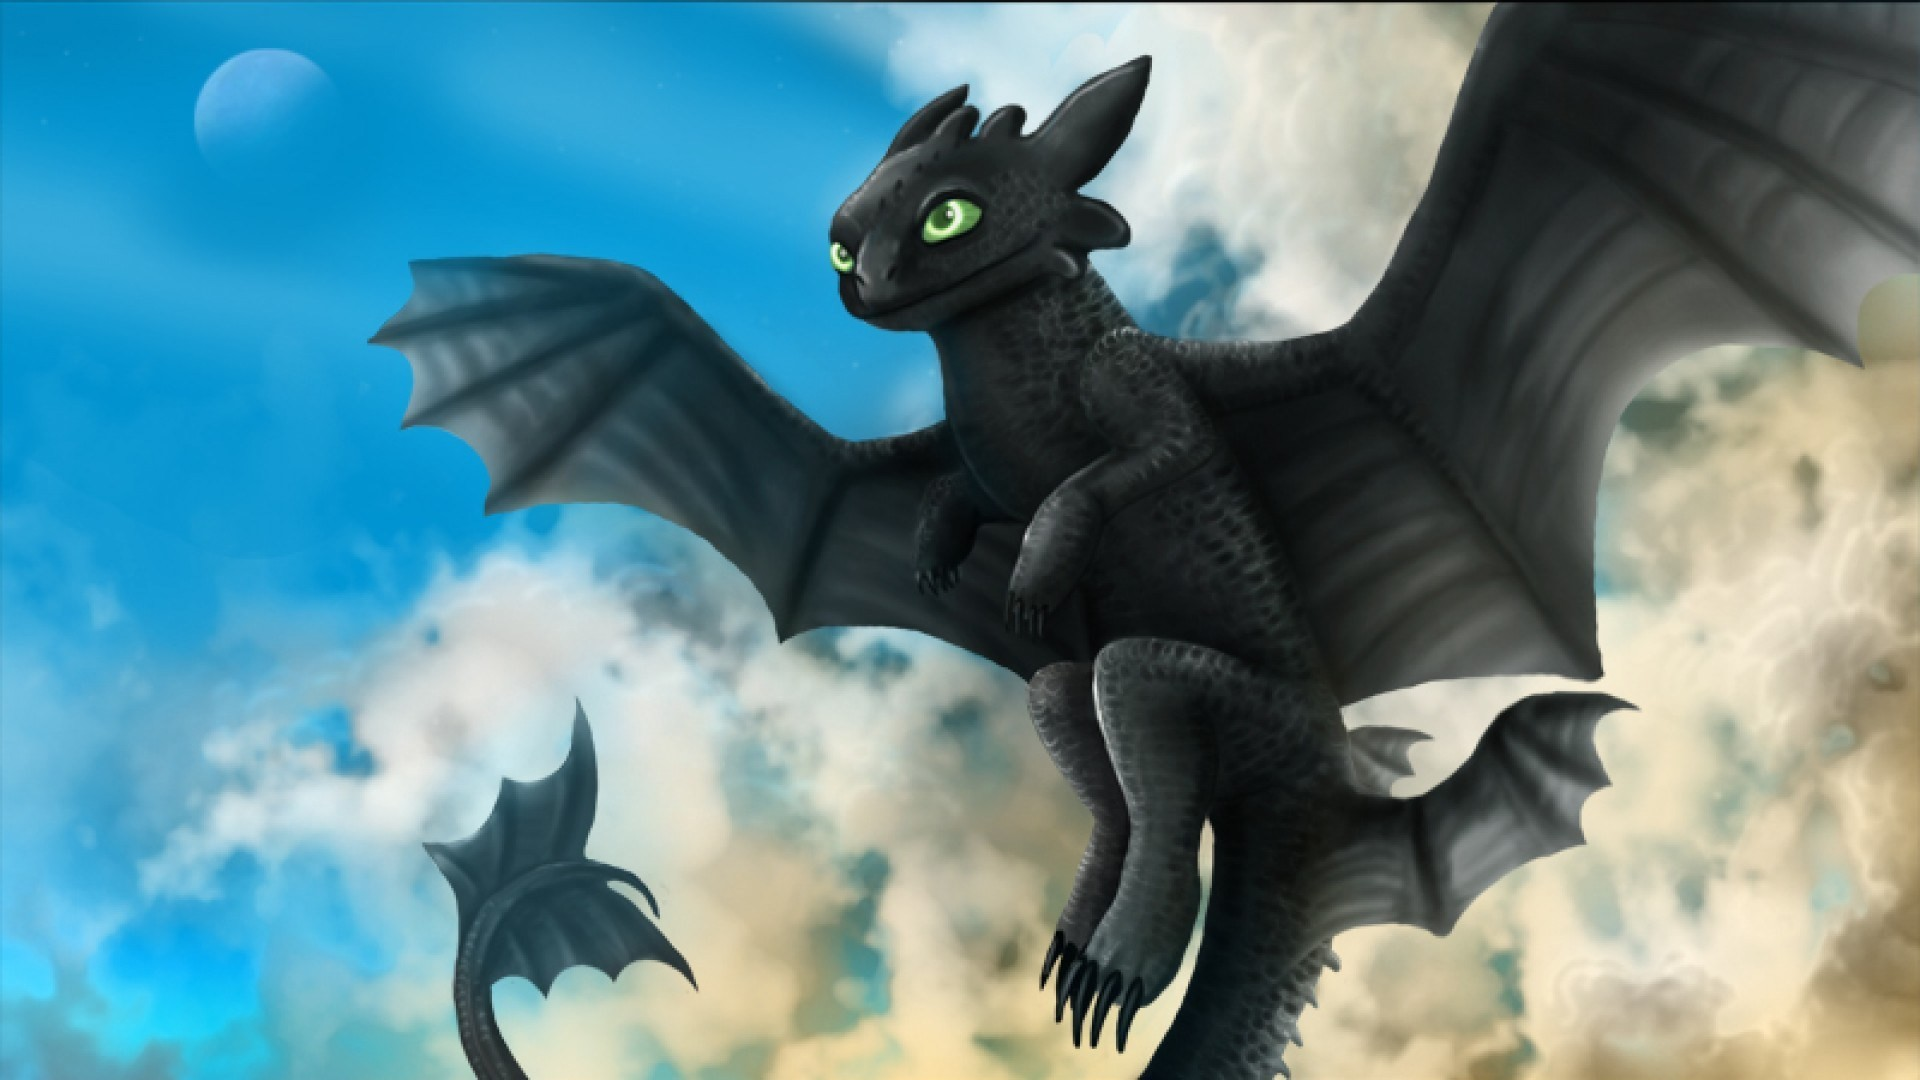 … Cool Pictures Of Toothless Wallpaper These are High Quality and High  Definition HD Wallpapers For PC